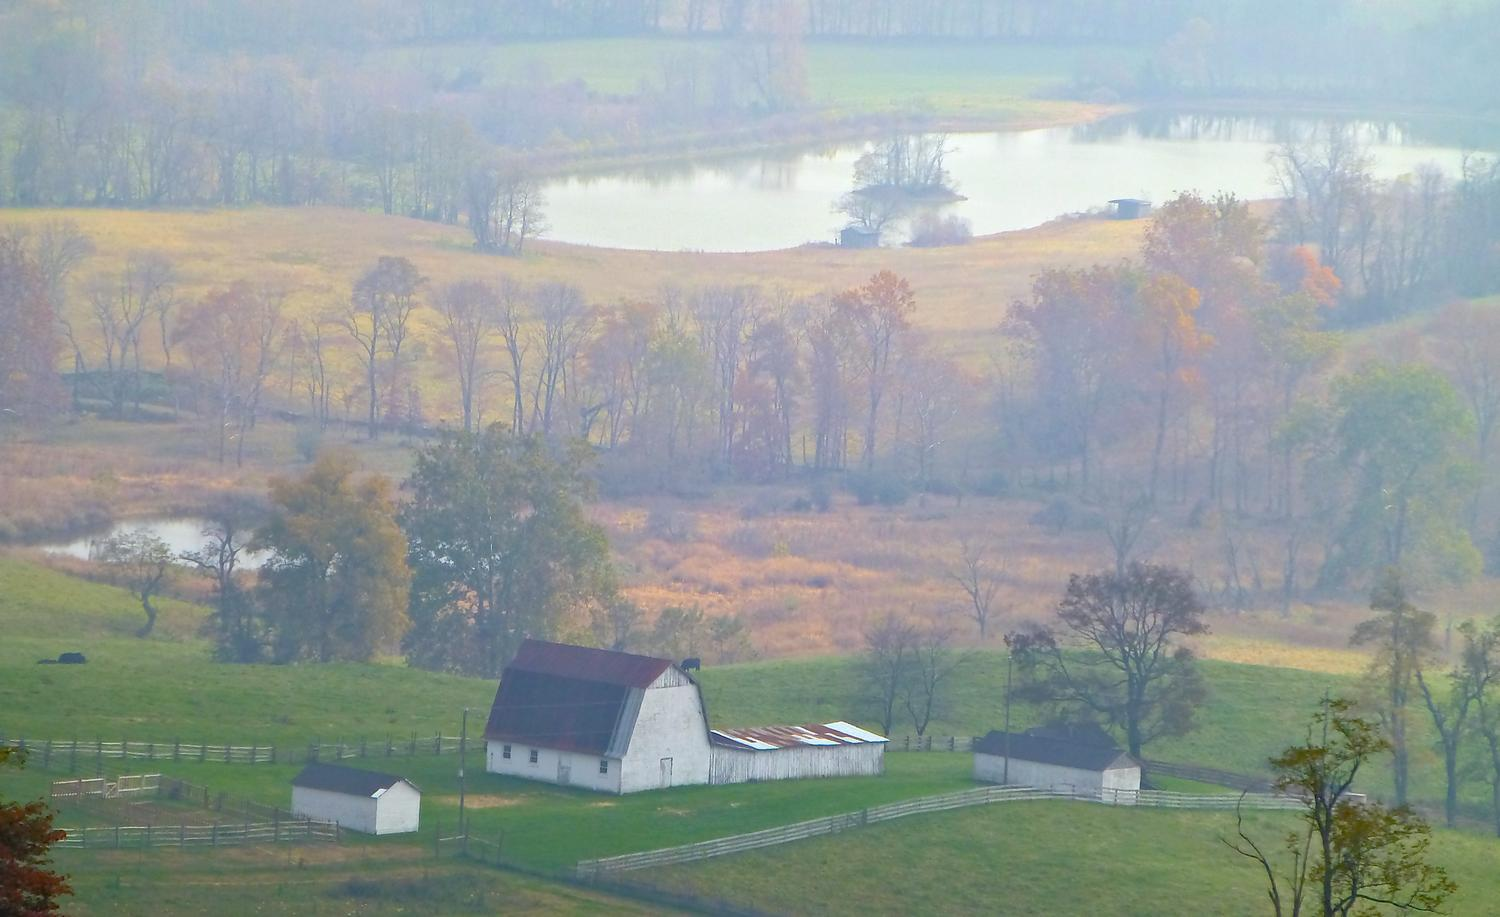 - Another view of the farm, as seen through the fog<br>--- Click to see ORIGINAL --- - Sky Meadows State park - Virginia - Cows - Panasonic DMC-ZS20 - Tony Karp, design, art, photography, techno-impressionist, techno-impressionism, aerial photography , drone , drones , dji , mavic pro , video , 3D printing - Books -